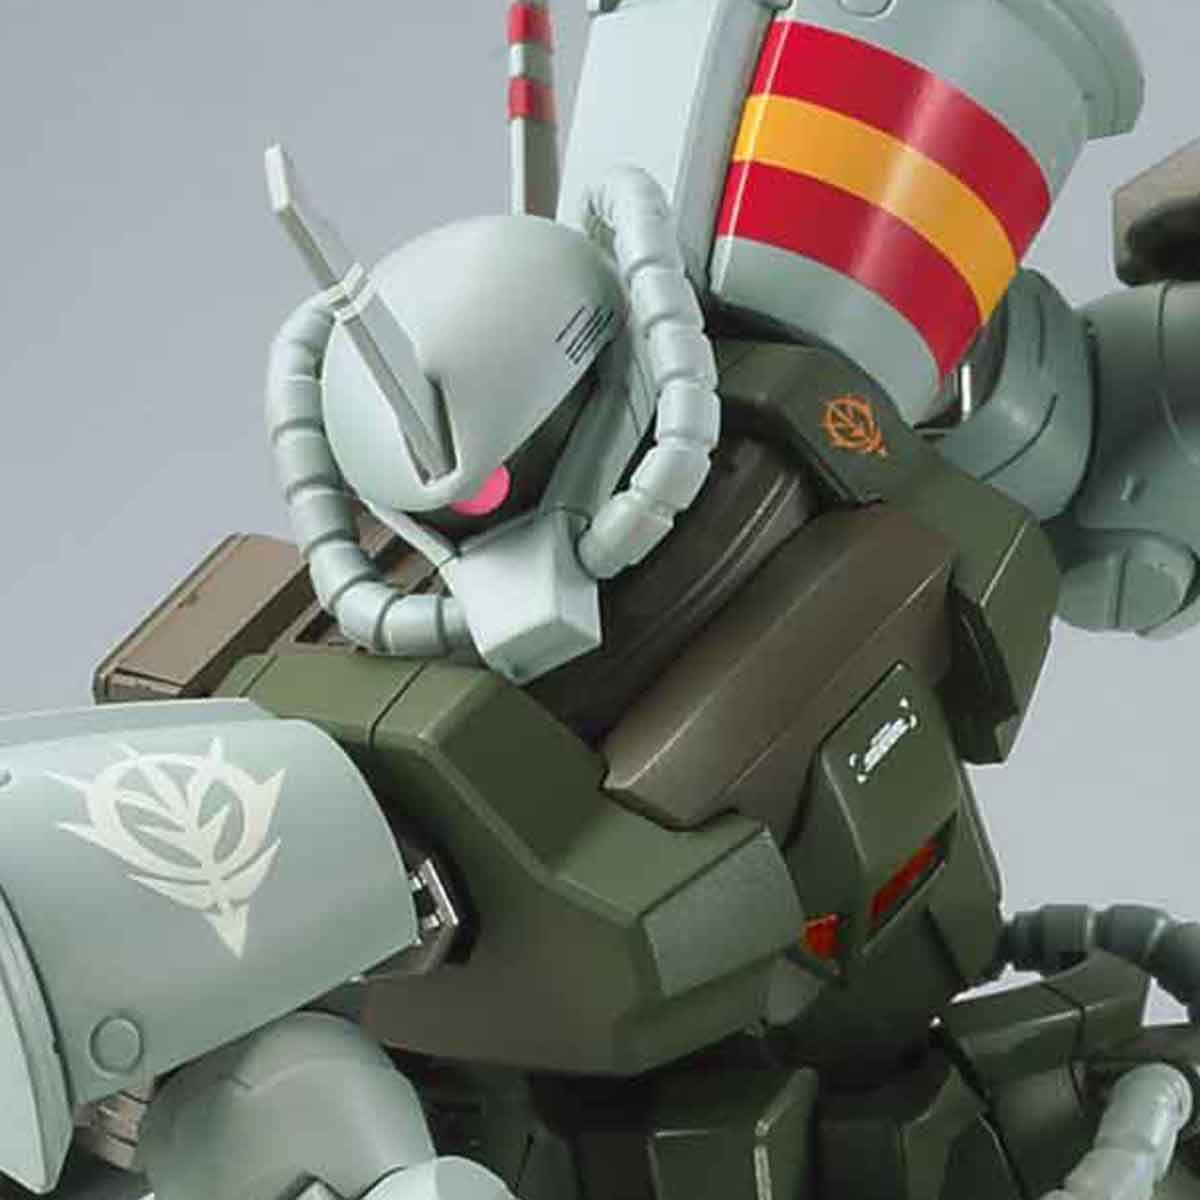 HG 1/144 ガンダムベース限定 グフ・フライトタイプ(21stCENTURY REAL TYPE Ver.)